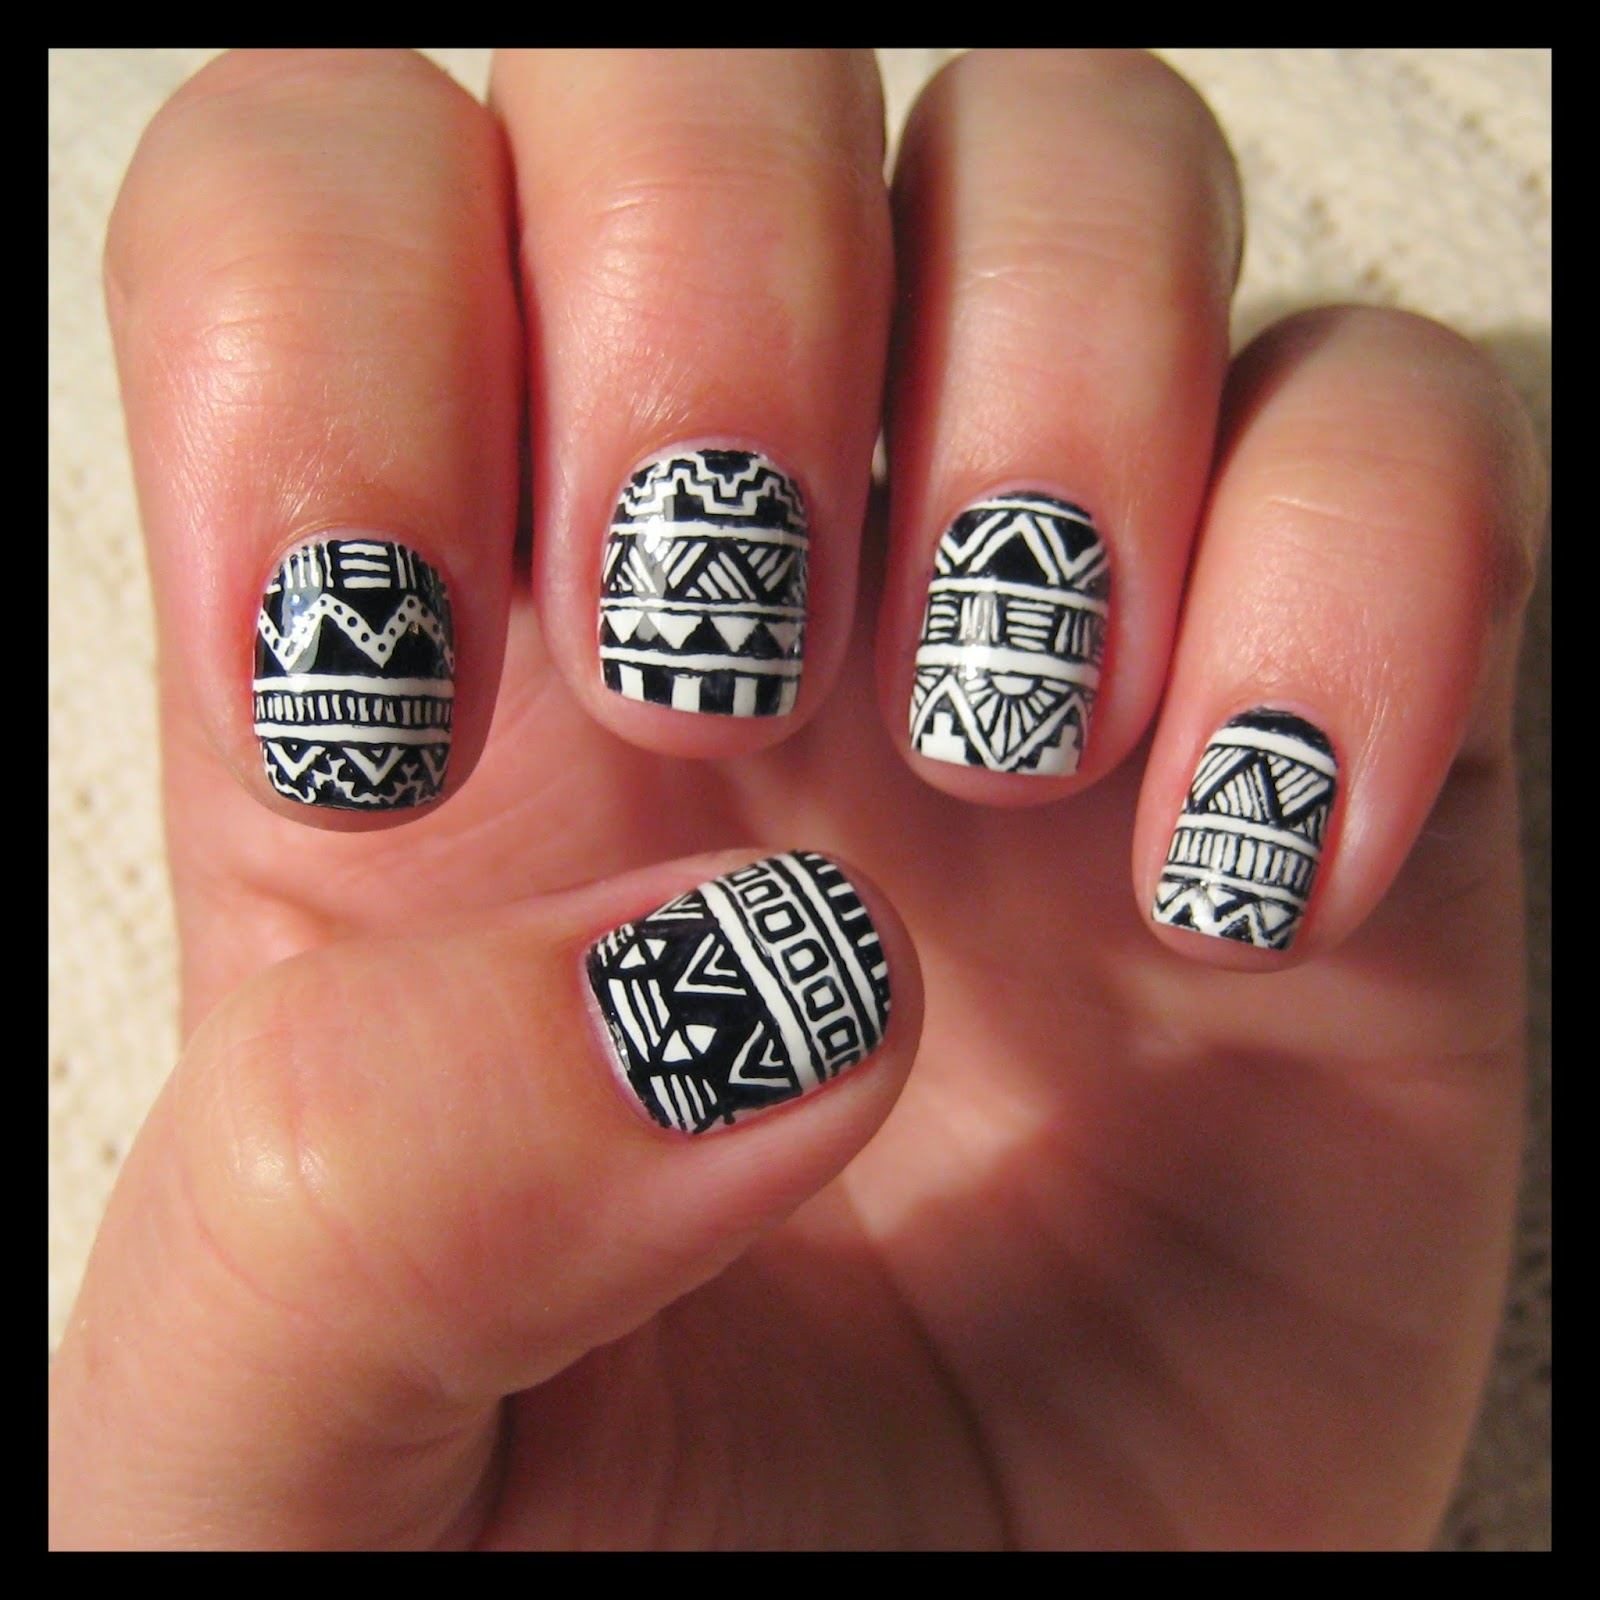 Dahlia nails muji pen aztec i based the design on a ton of different aztec prints and patterns i found on google images i wanted each nail to be different so just took bits and pieces prinsesfo Images